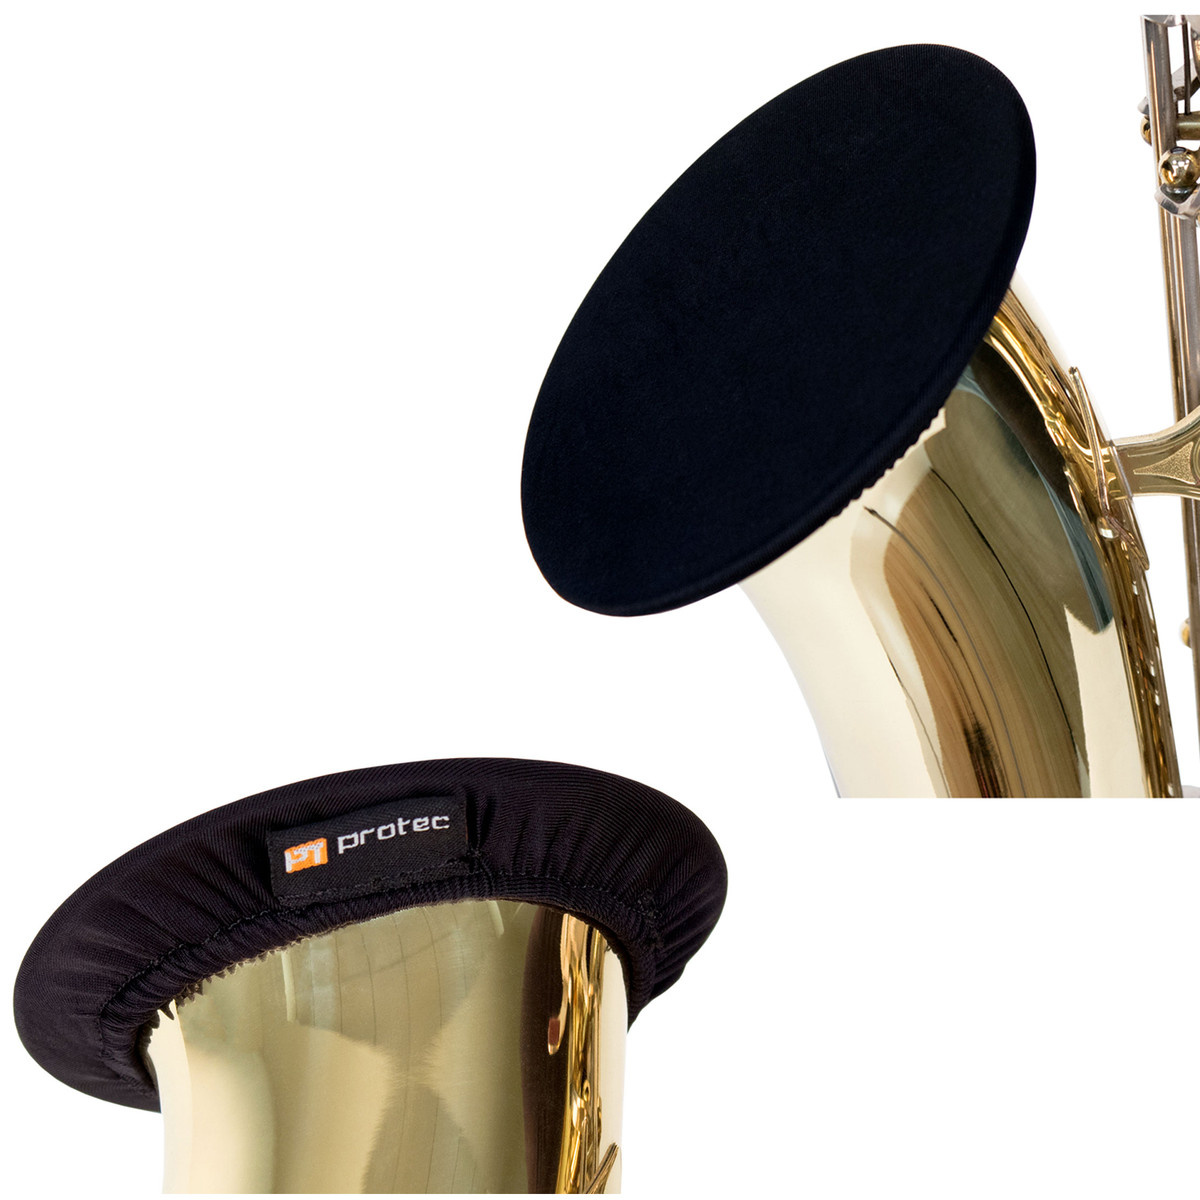 Protec Bell Cover for Clarinet, Oboe, or Bassoon